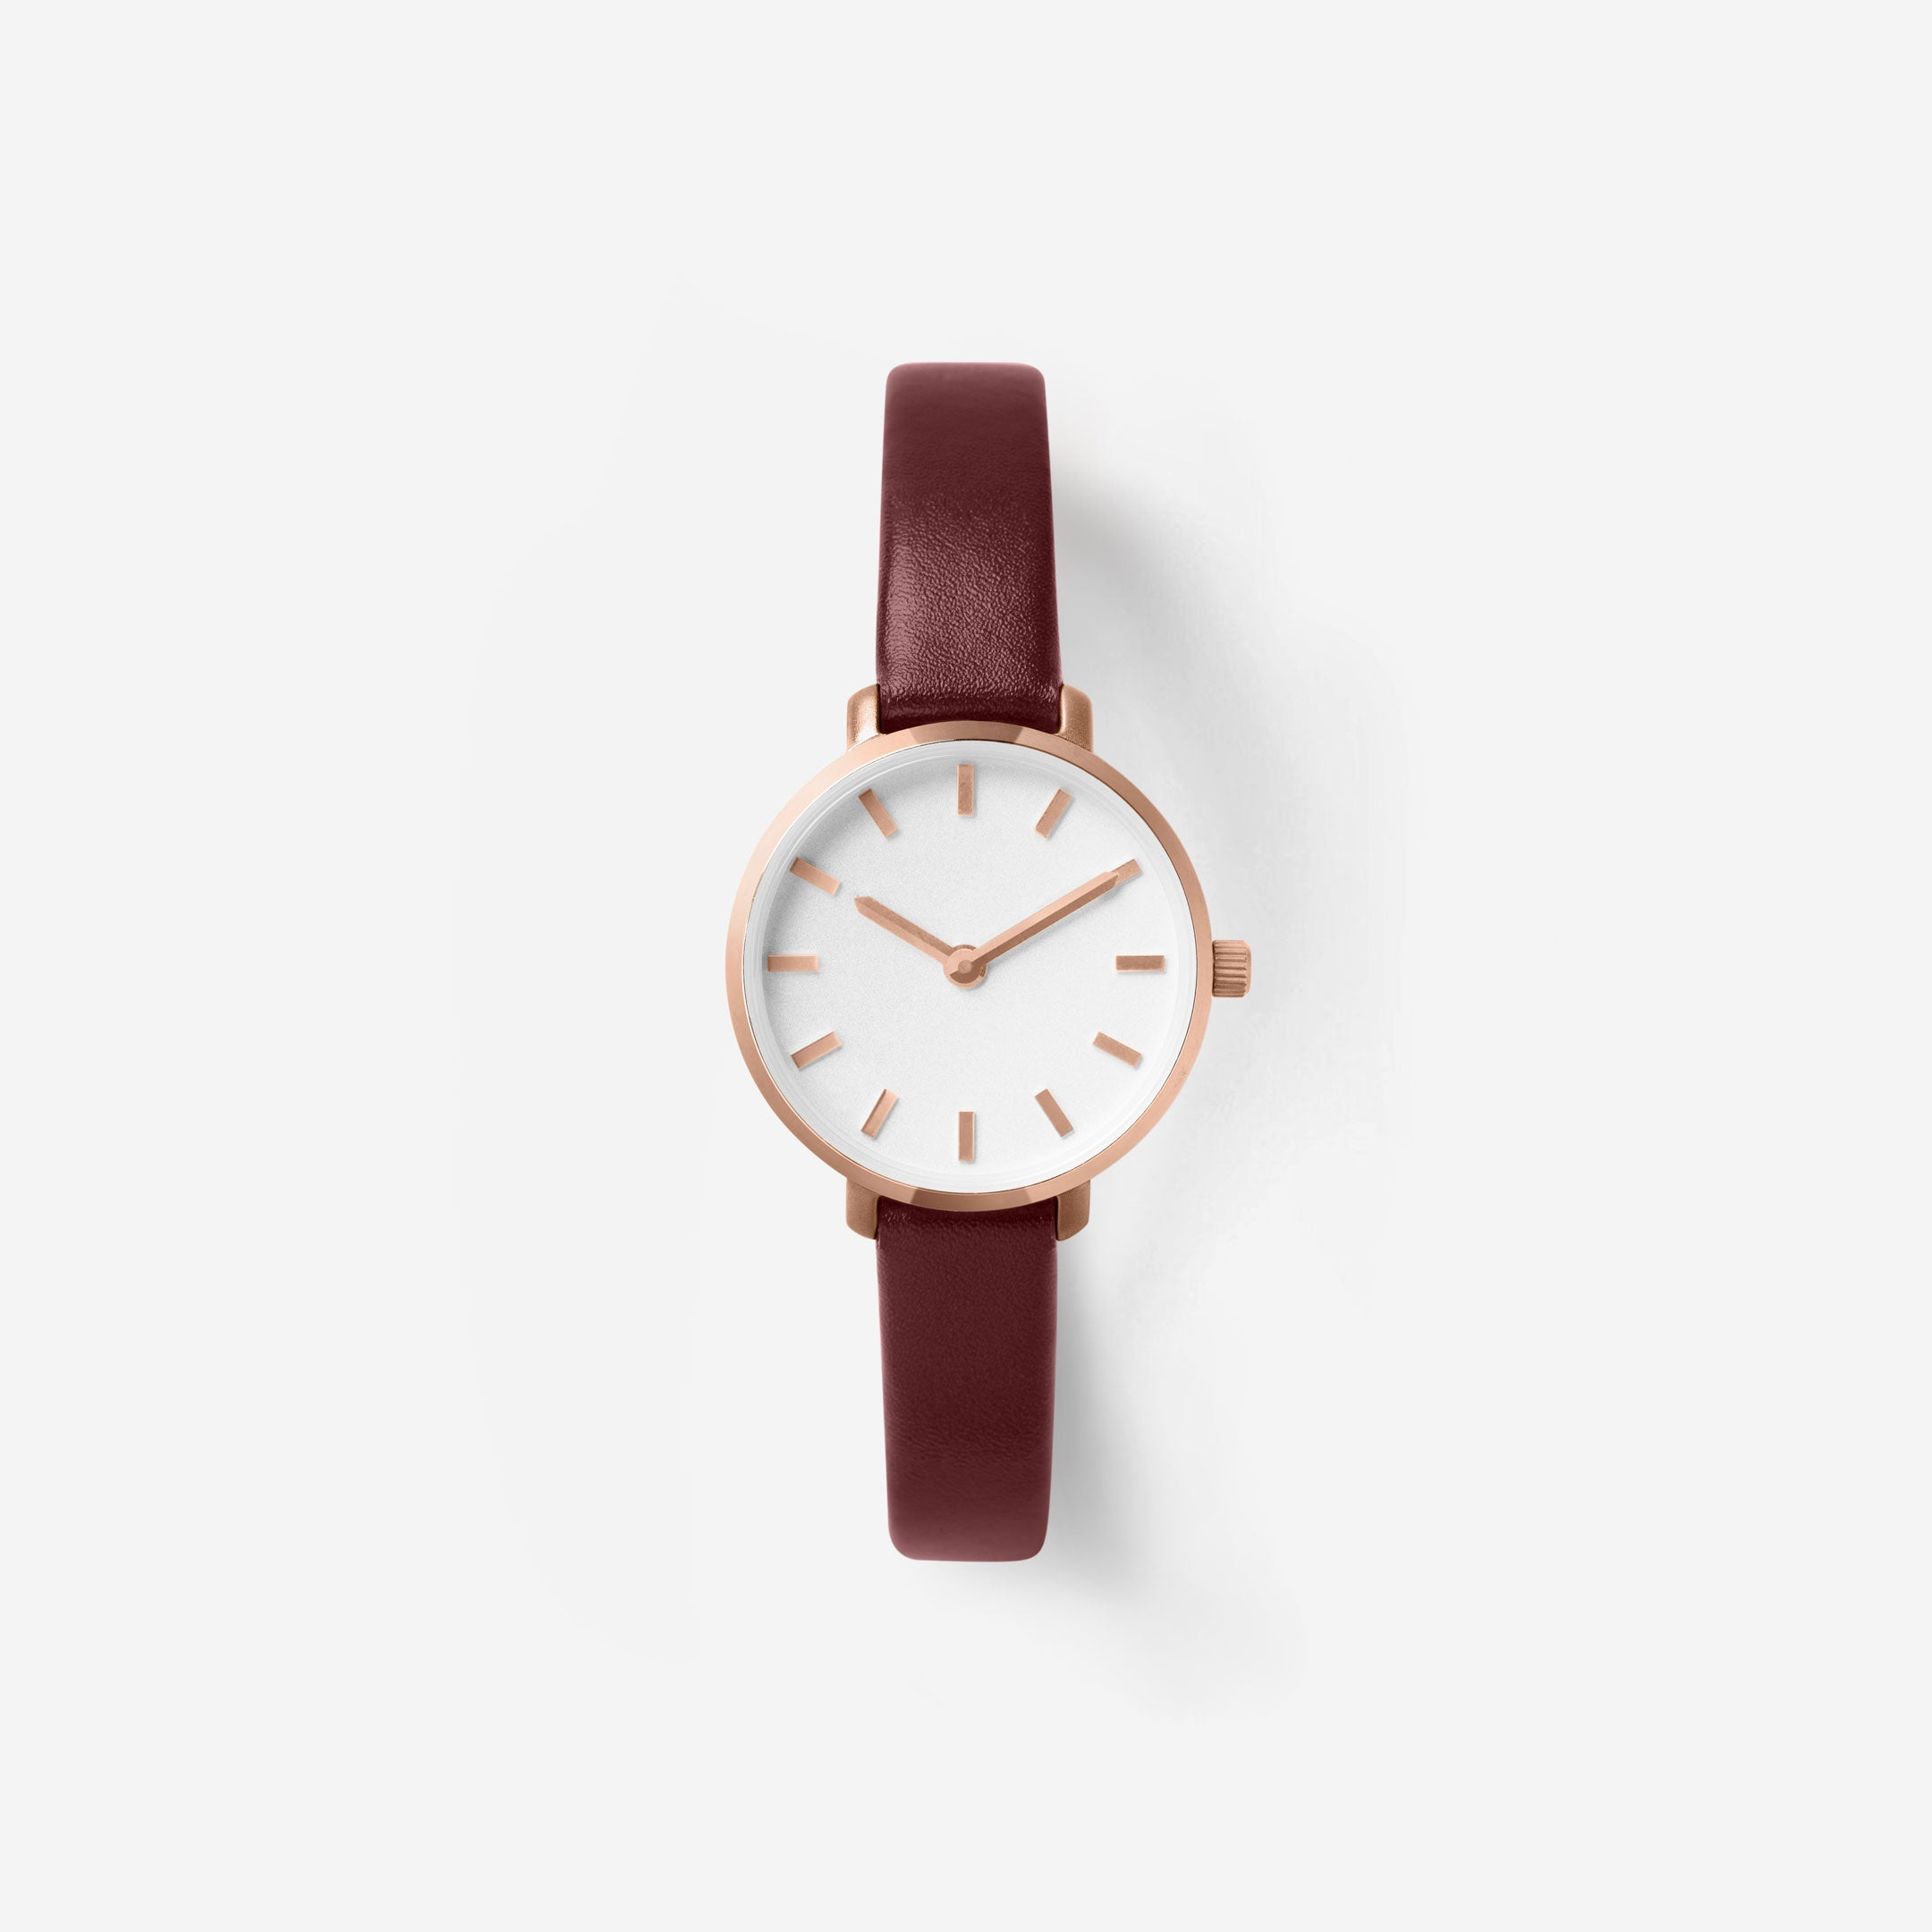 //cdn.shopify.com/s/files/1/0879/6650/products/breda-beverly-1730e-rosegold-maroon-leather-watch-front_1024x1024.jpg?v=1522789968